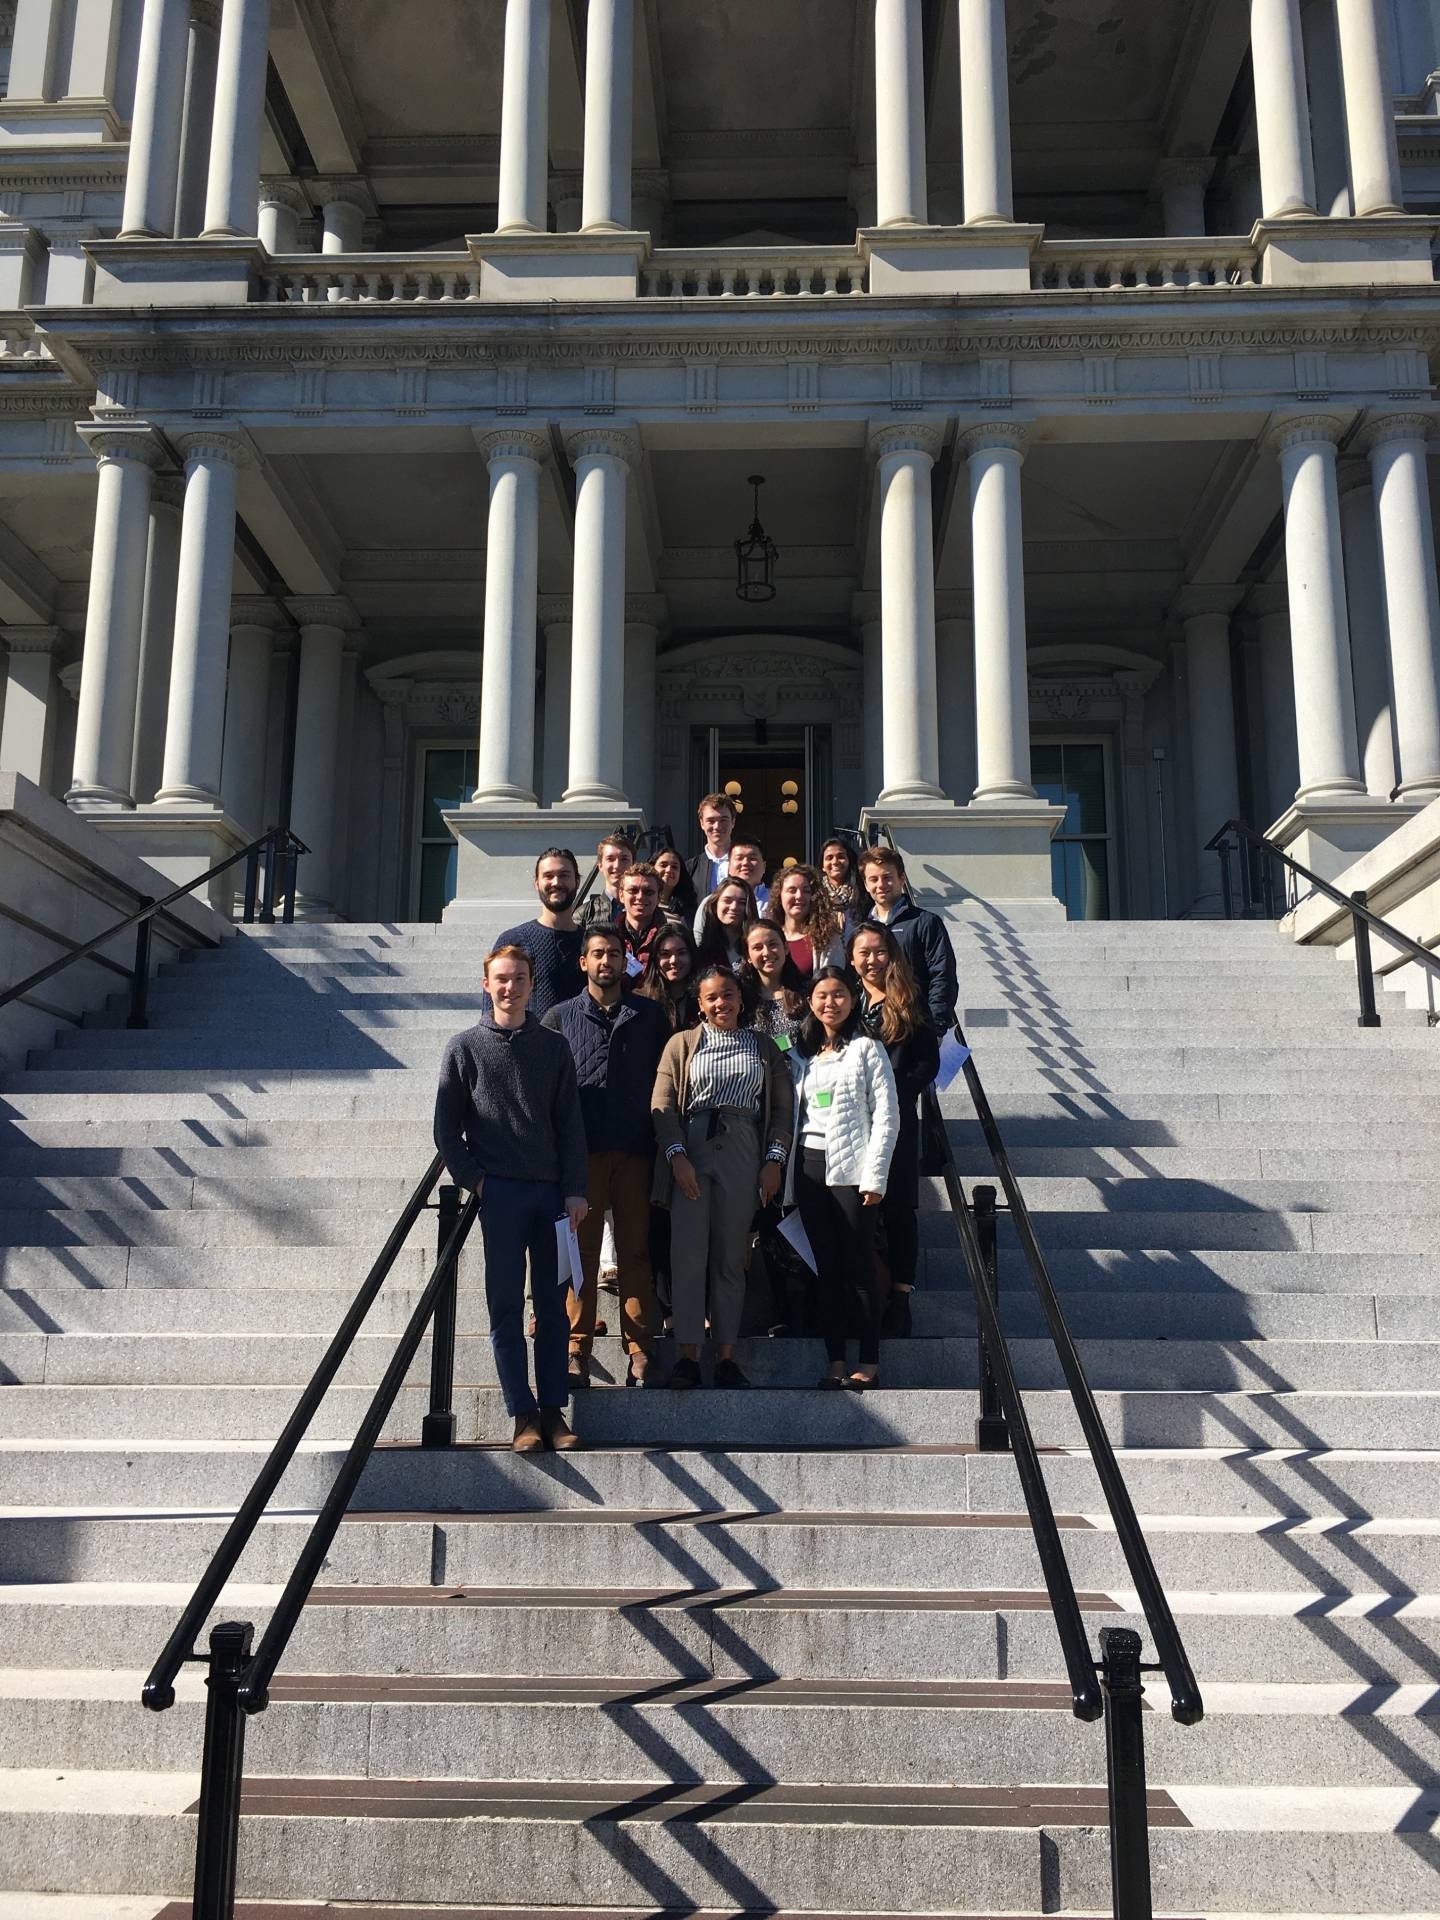 A group of students pose for a photo on the steps of the Eisenhower Executive Office Building in Washington DC